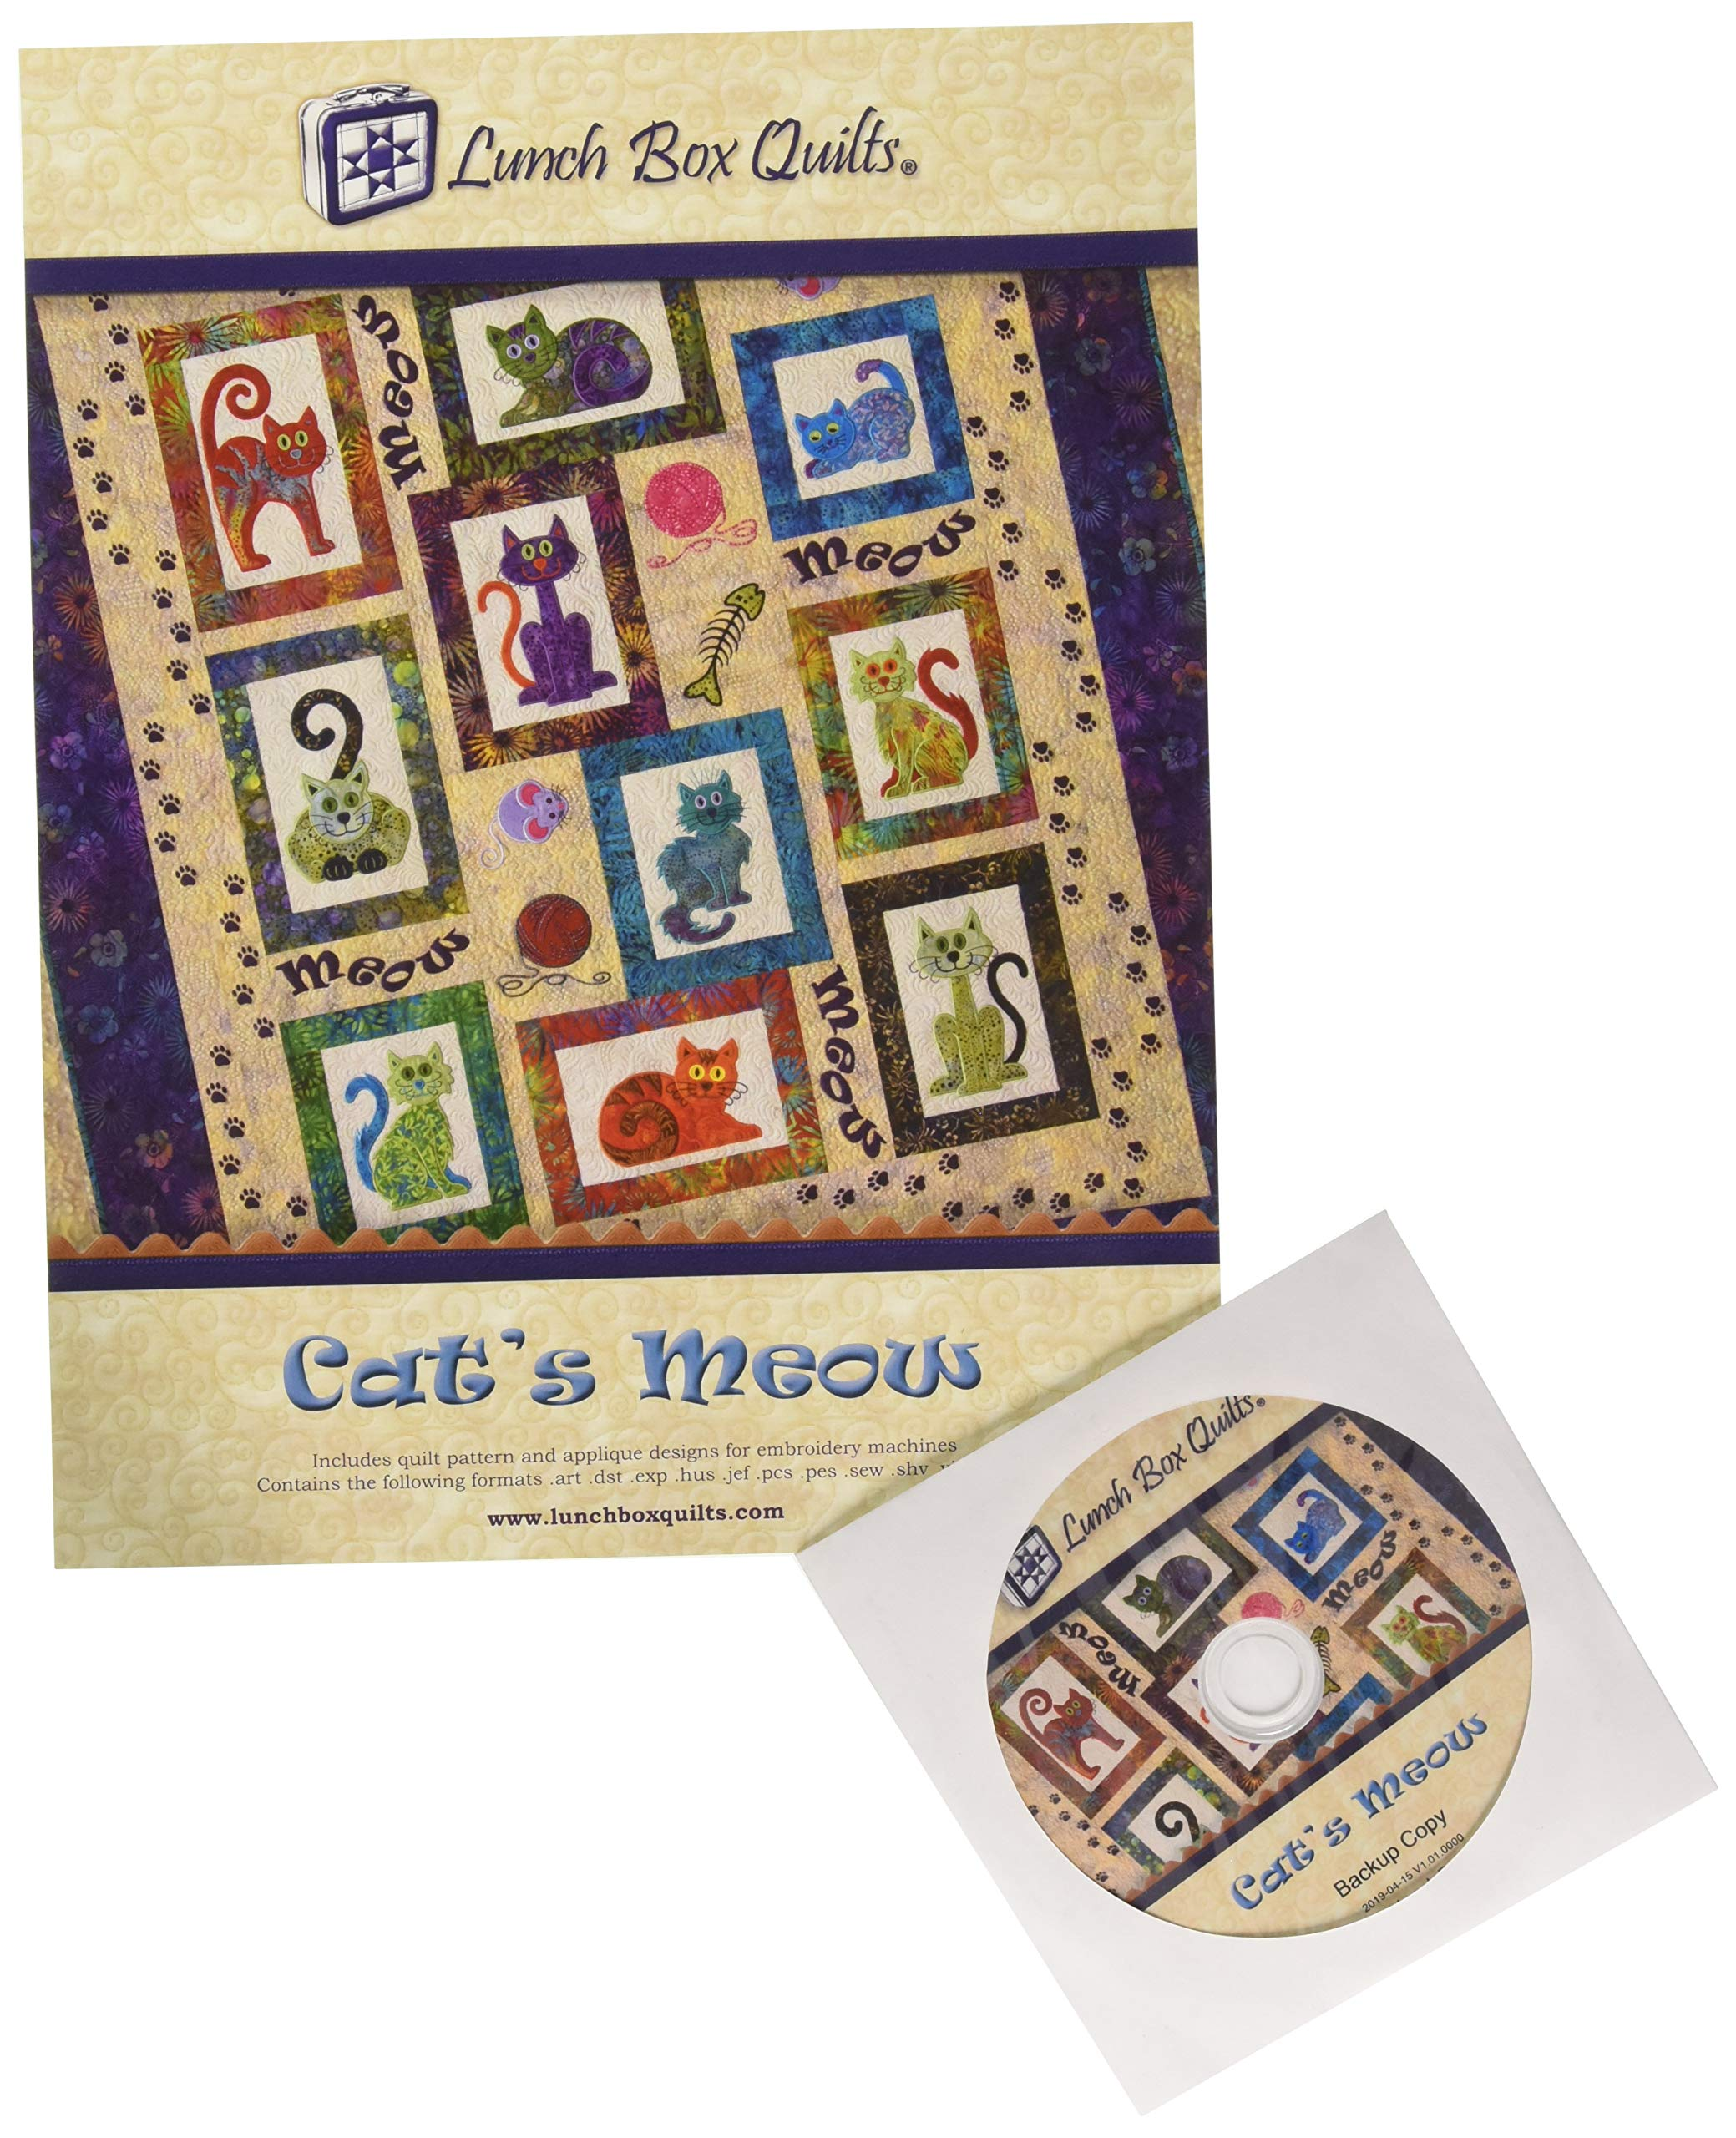 Lunch Box Quilts Cat's Meow Pattern by Lunch Box Quilts